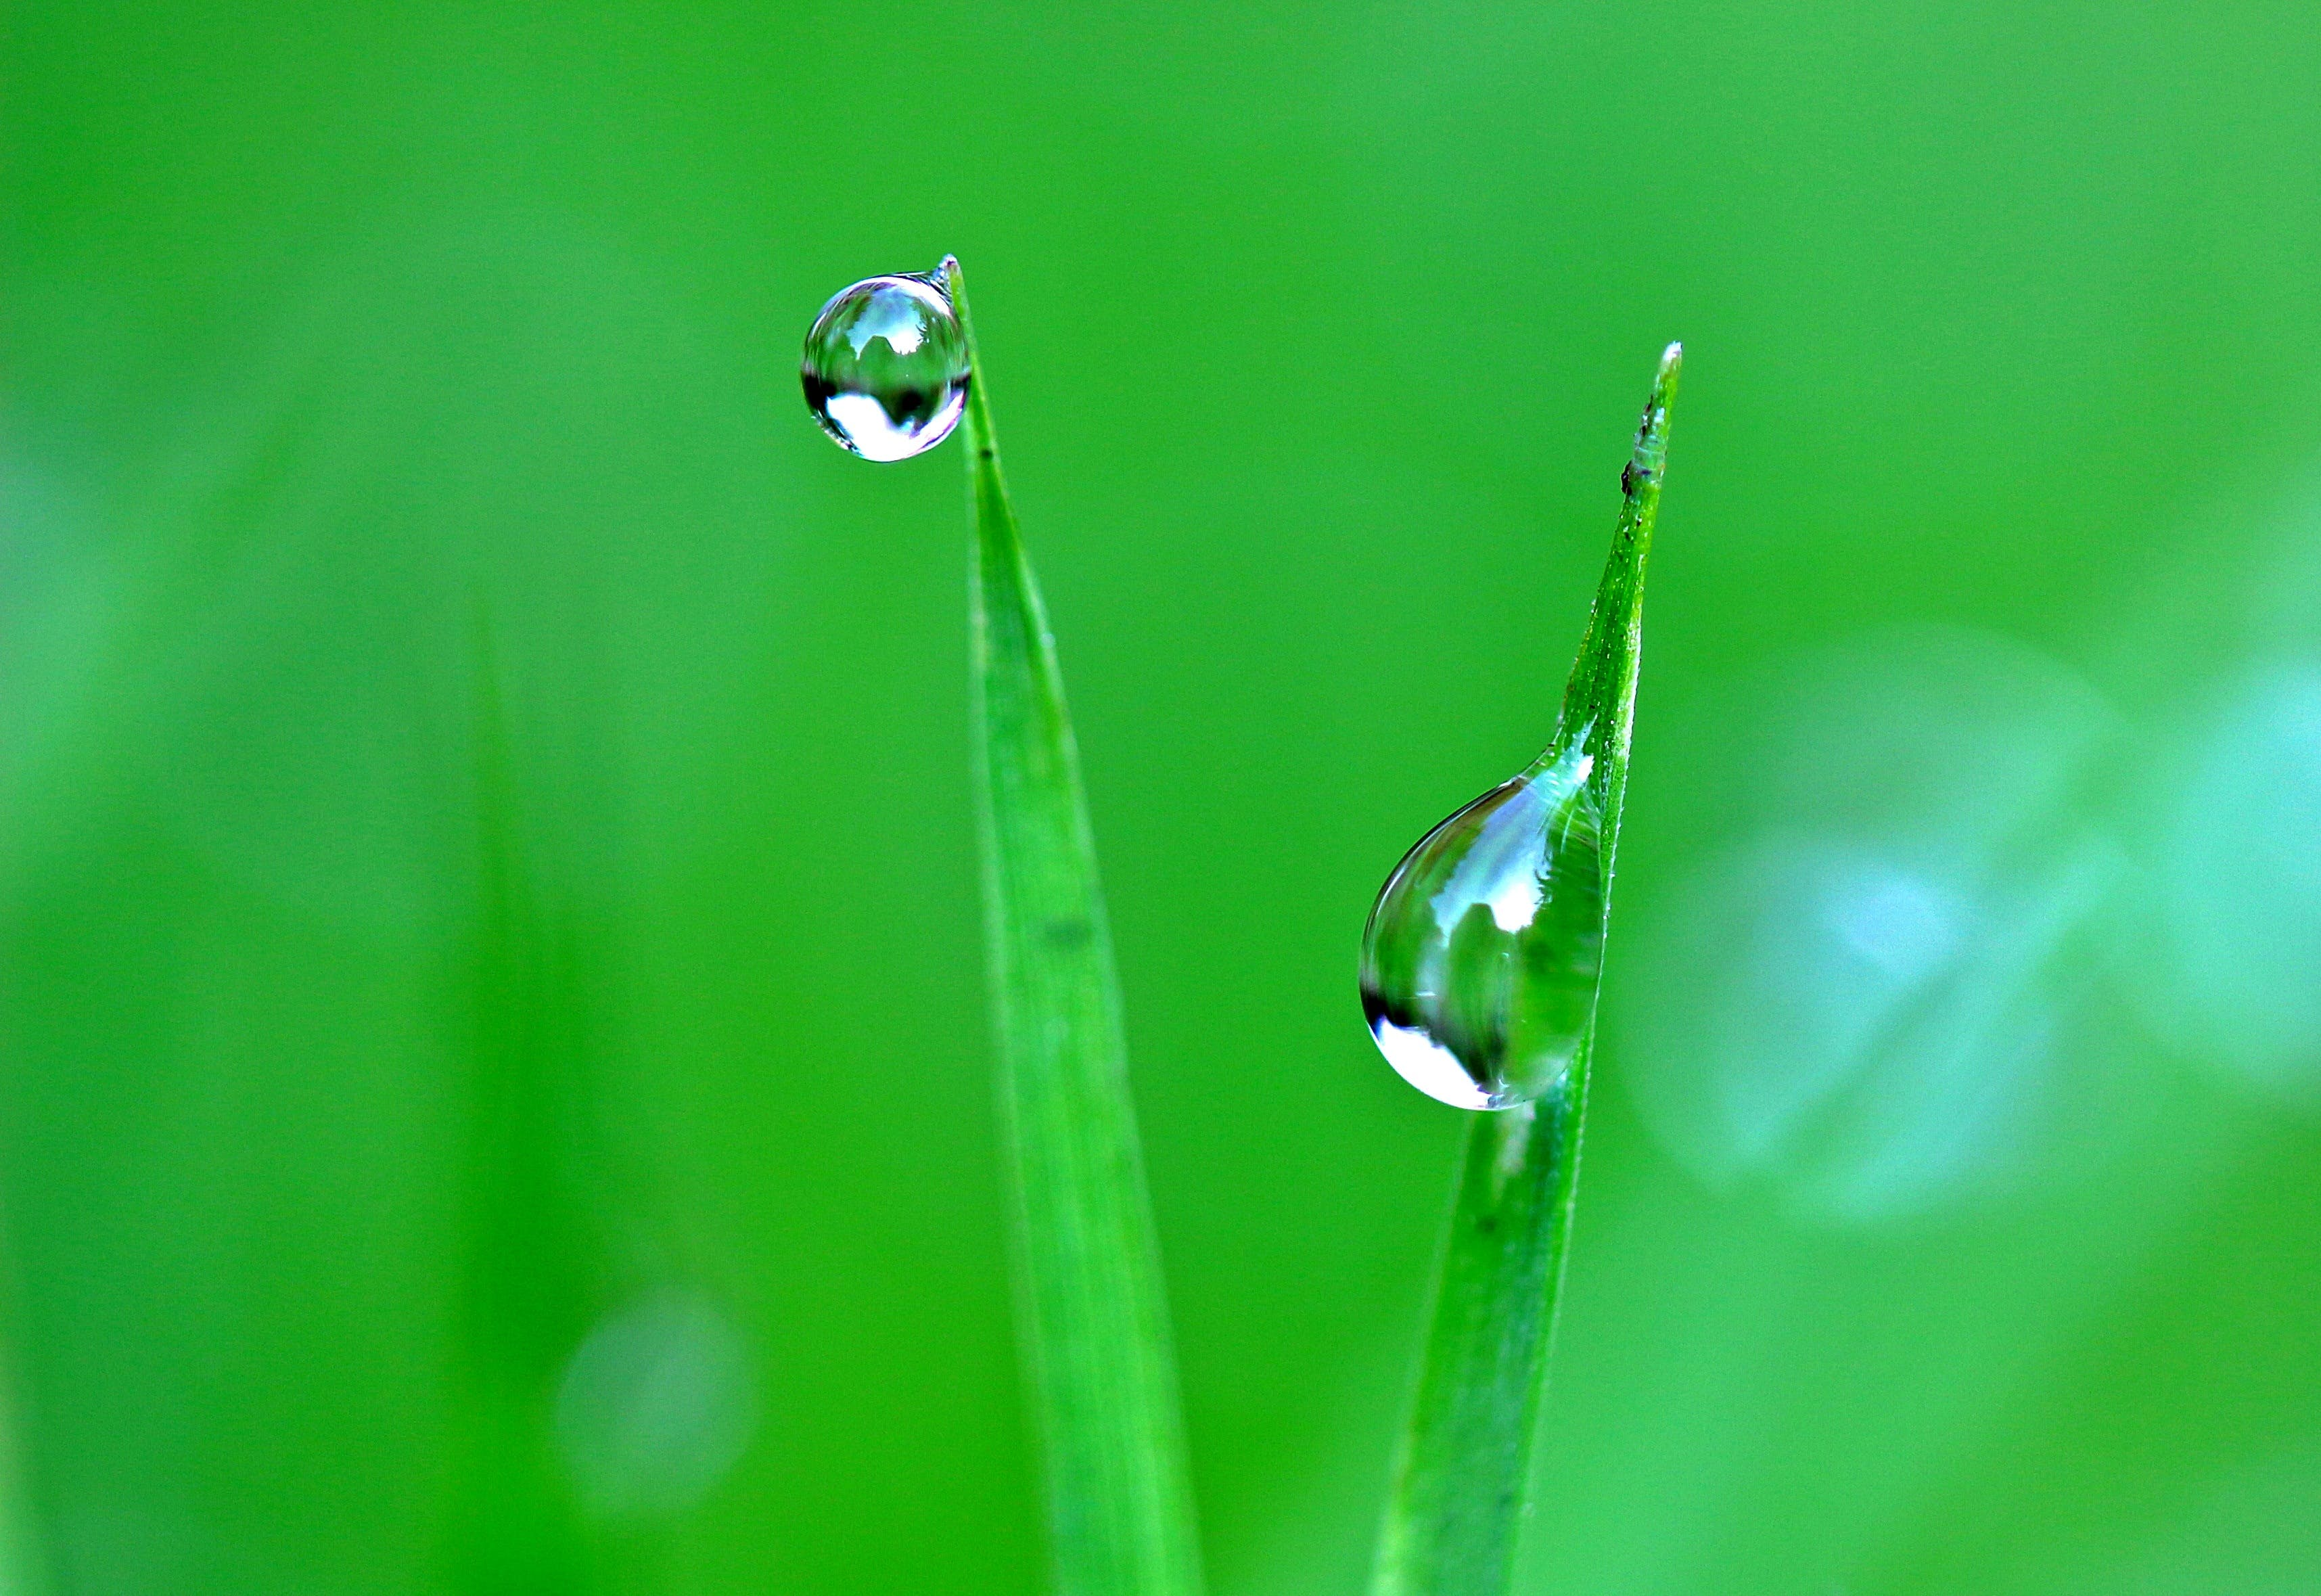 Close-up Photo of Drop of Water on Plants